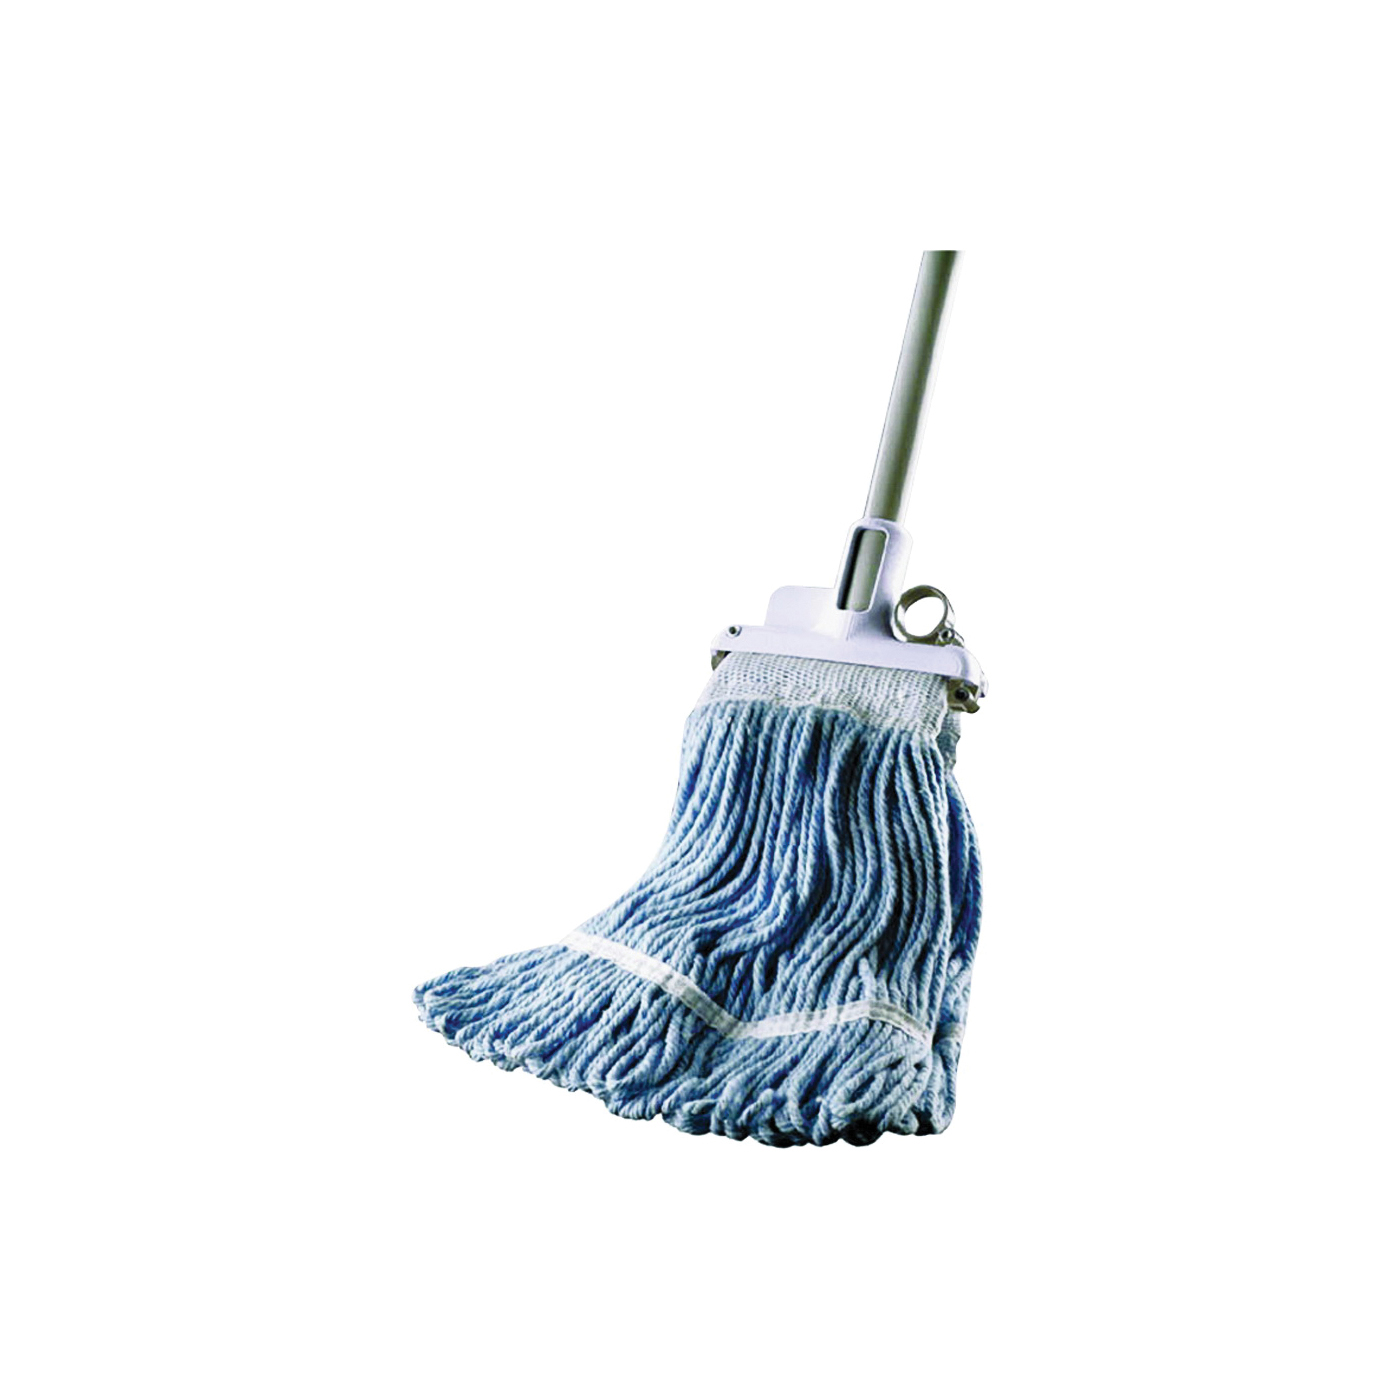 Picture of Quickie 023MBCAN Wet Mop, 48 in L, Cotton Mop Head, Steel Handle